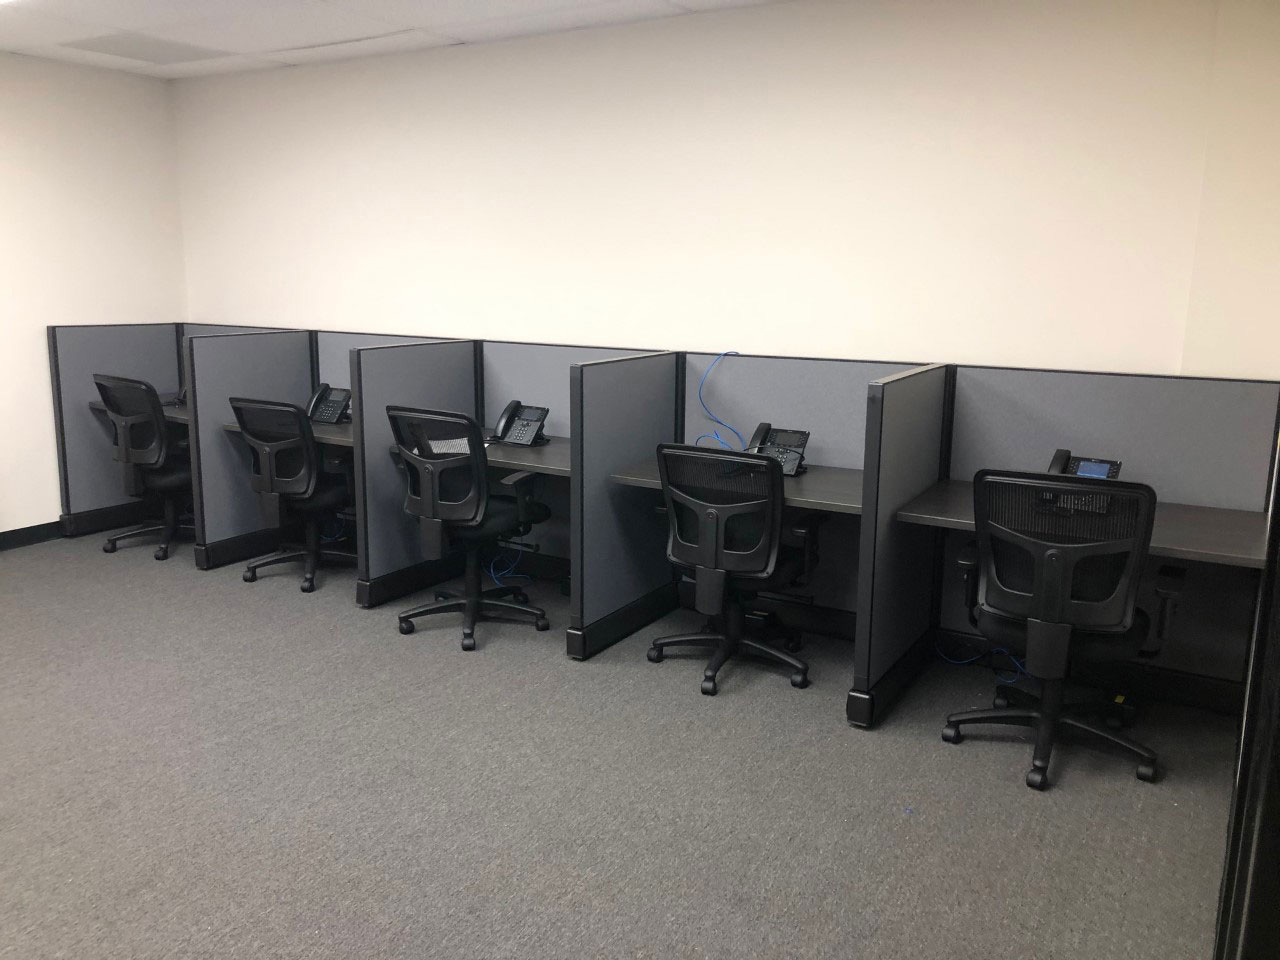 office-cubicles-for-sale-in-tampa-florida-4.jpg